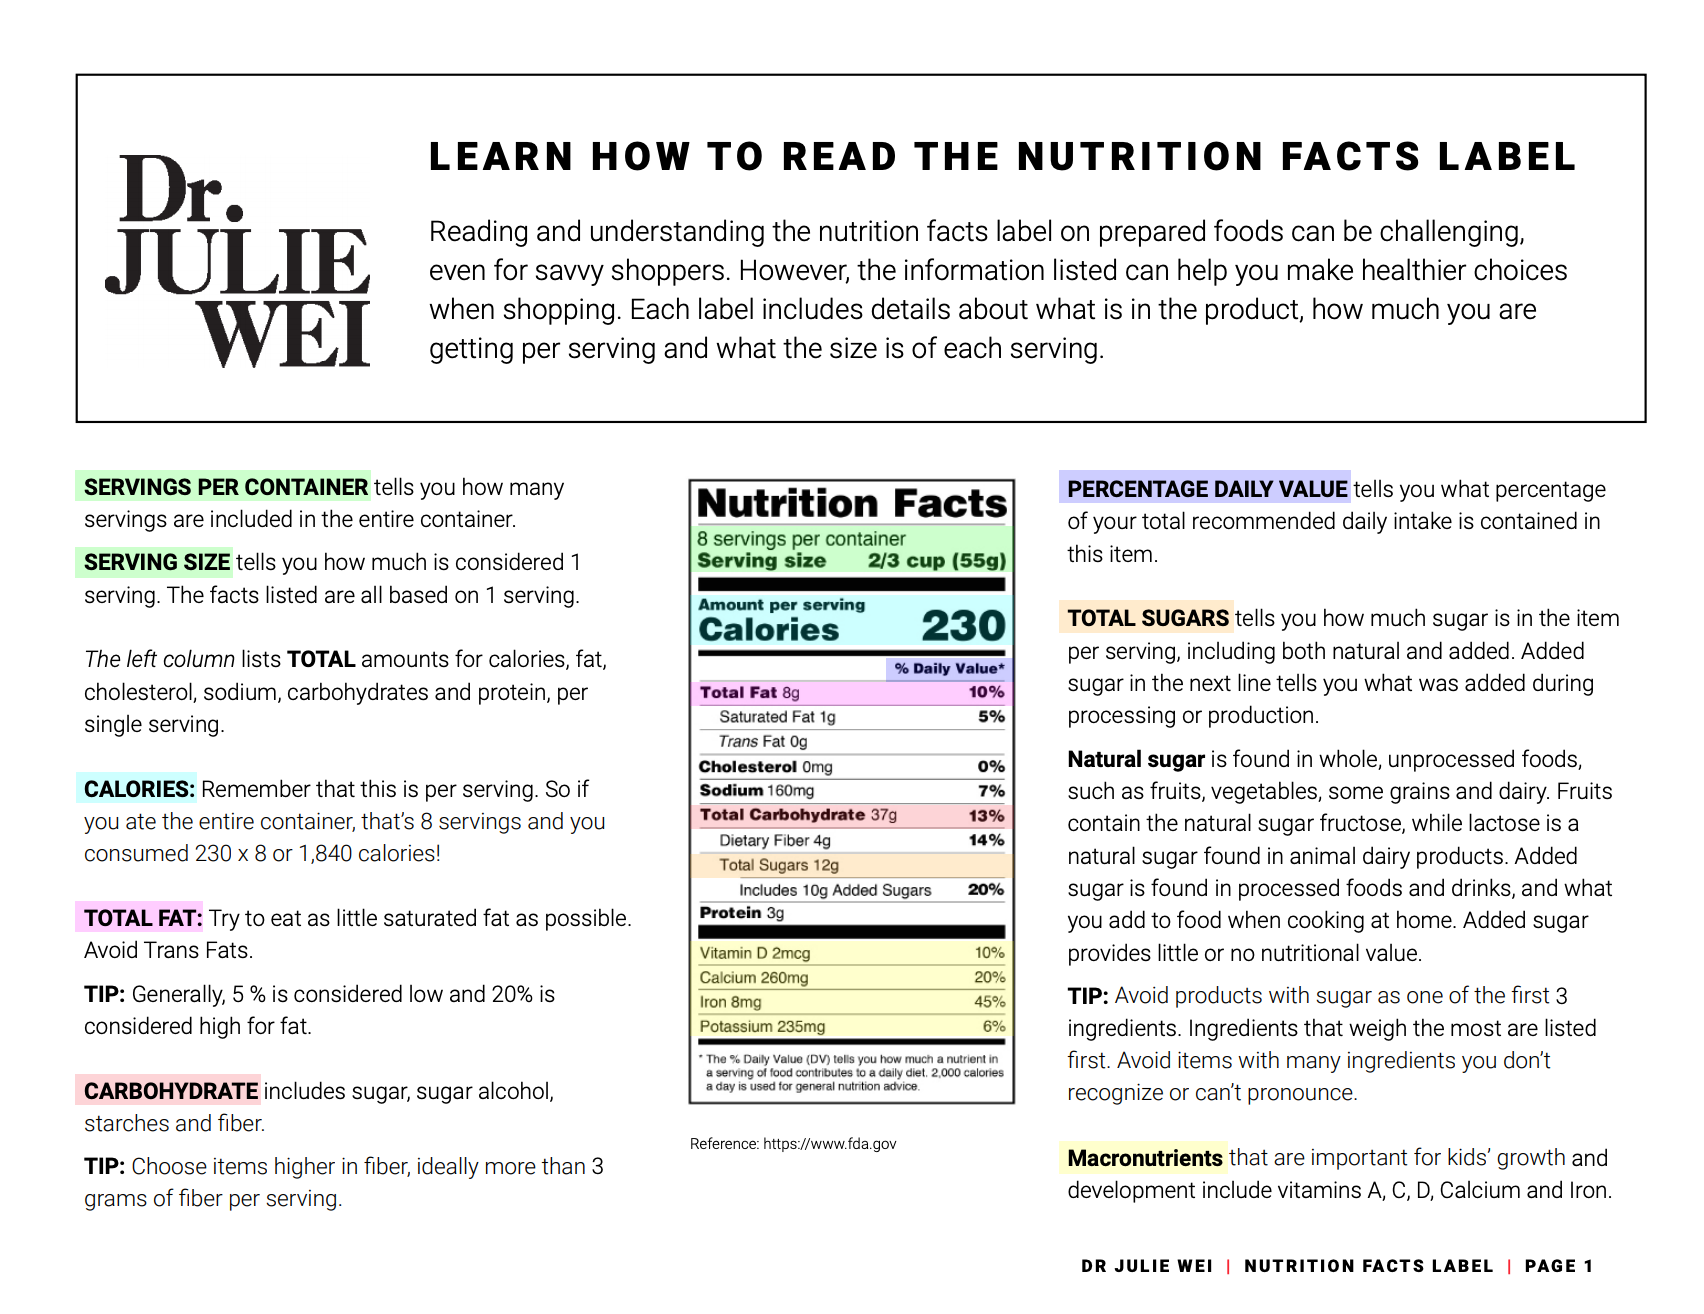 Chart describing what the items on a nutrition facts label mean